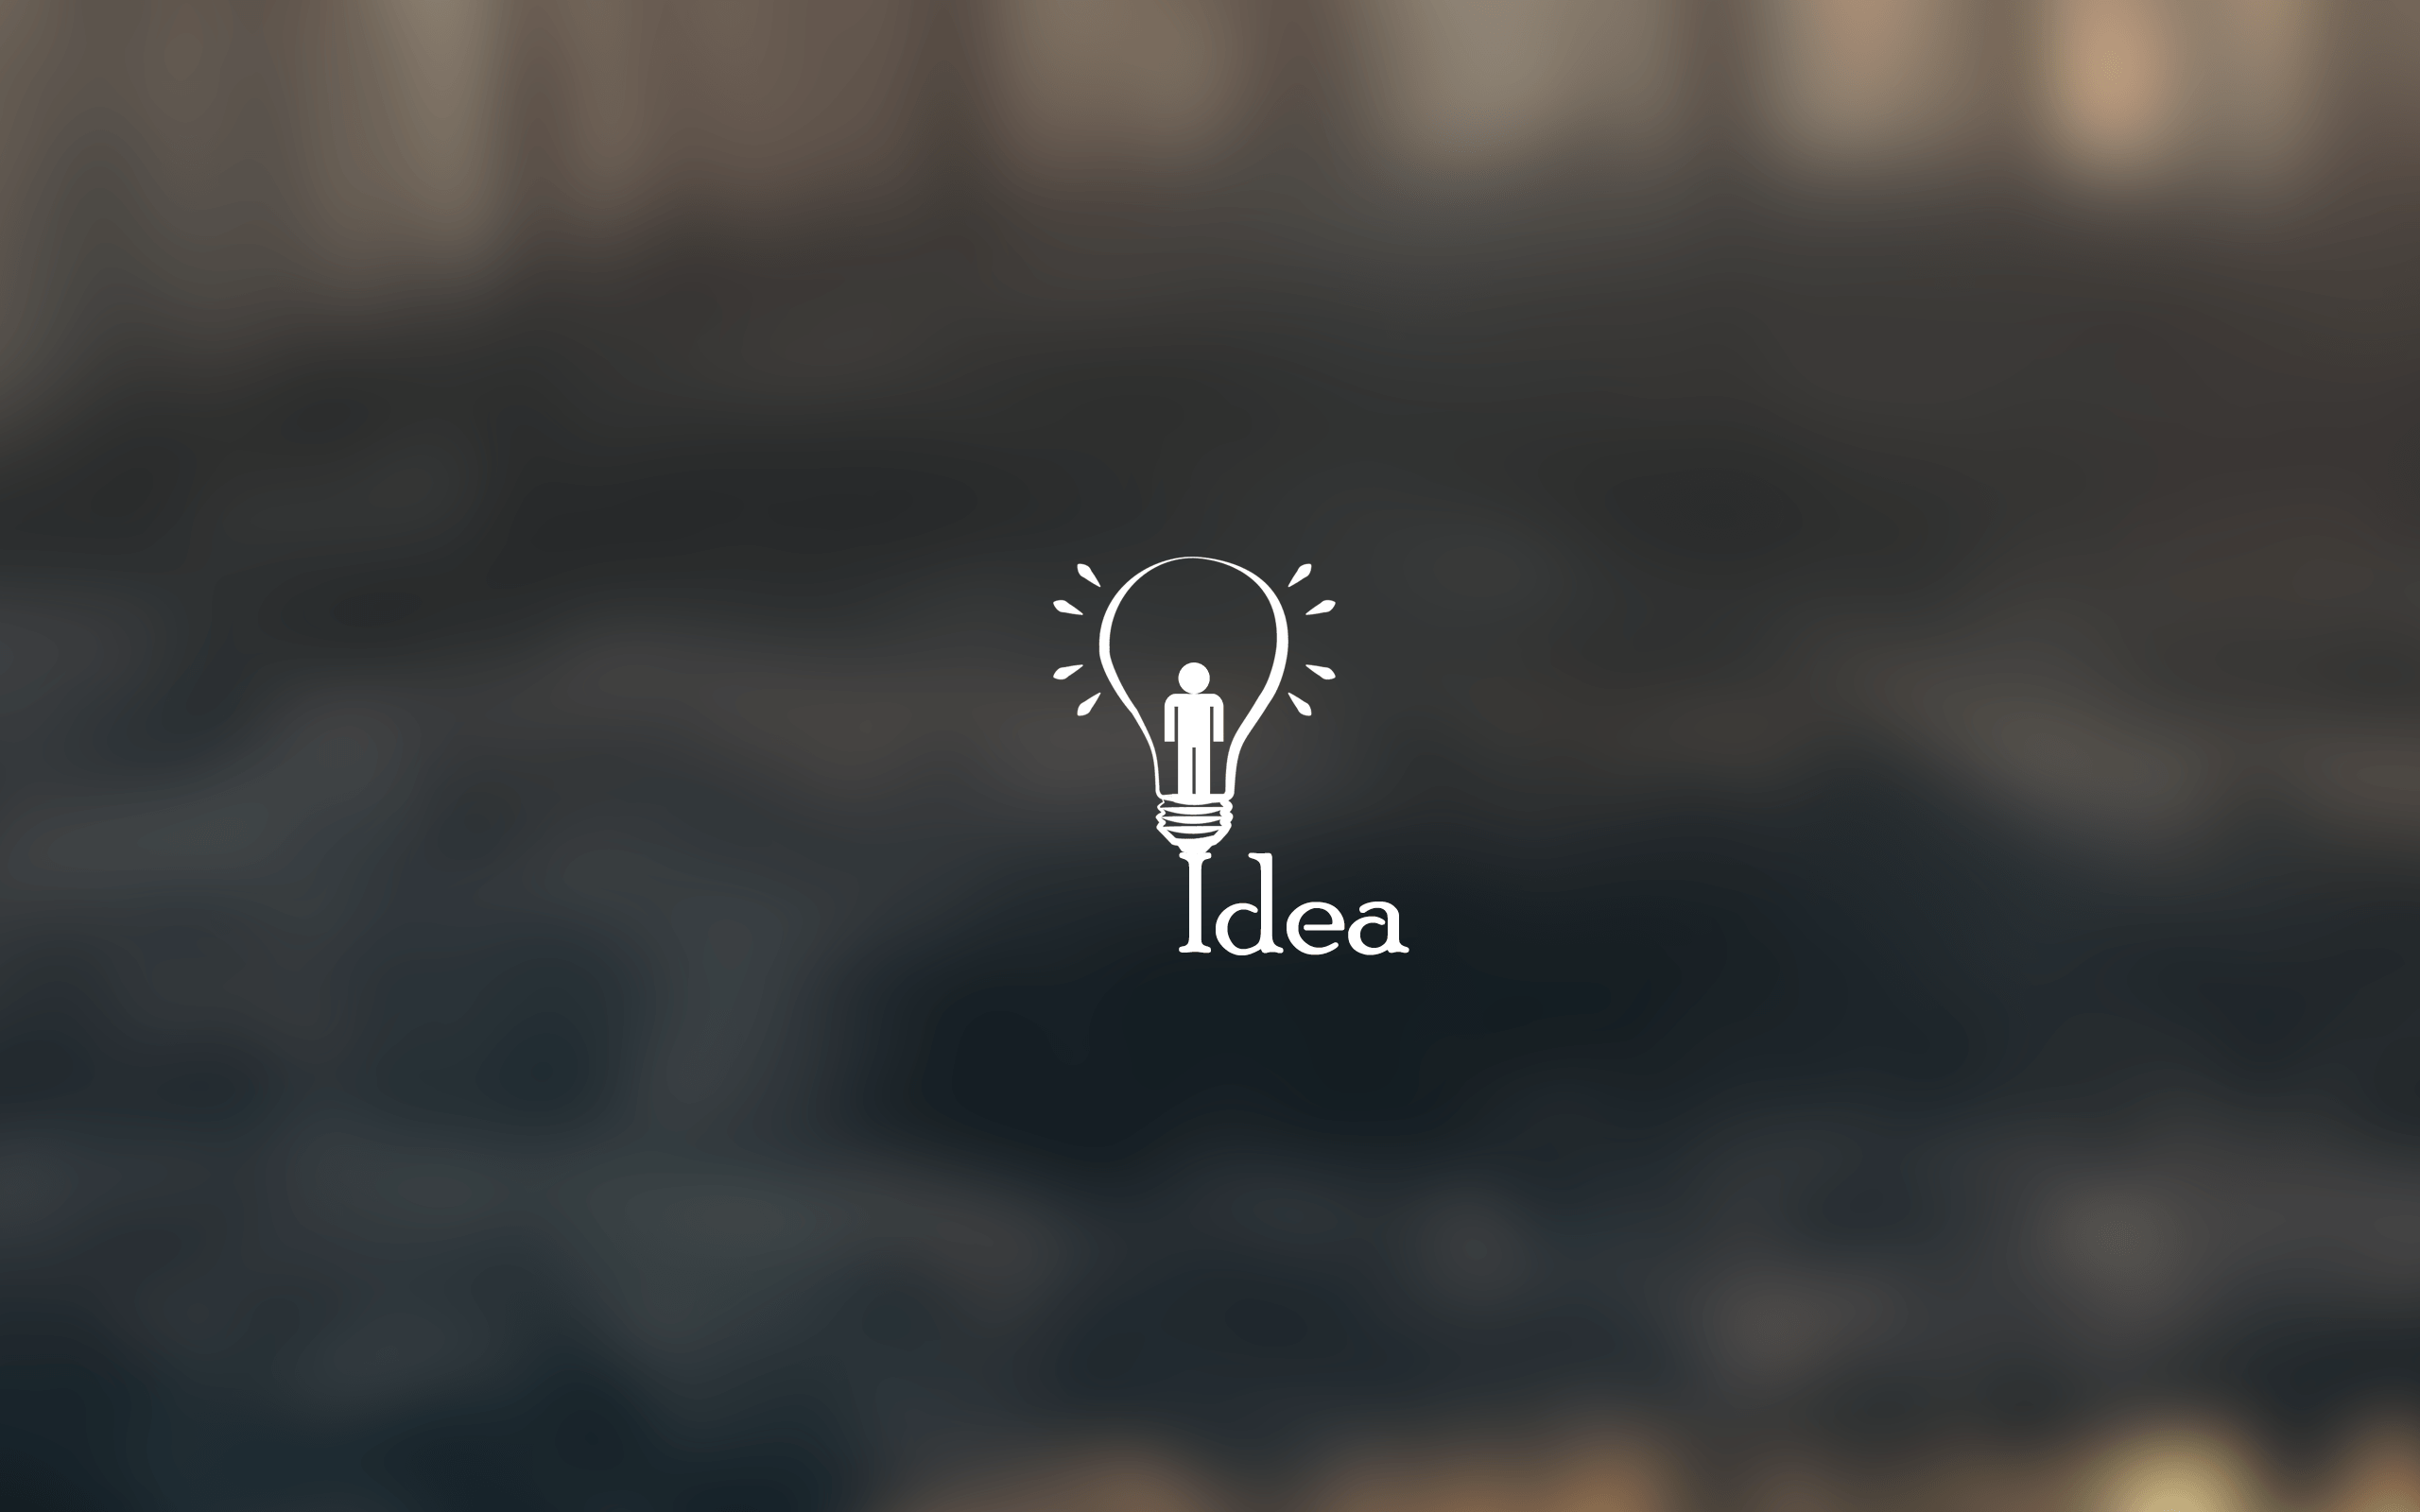 Idea Wallpaper